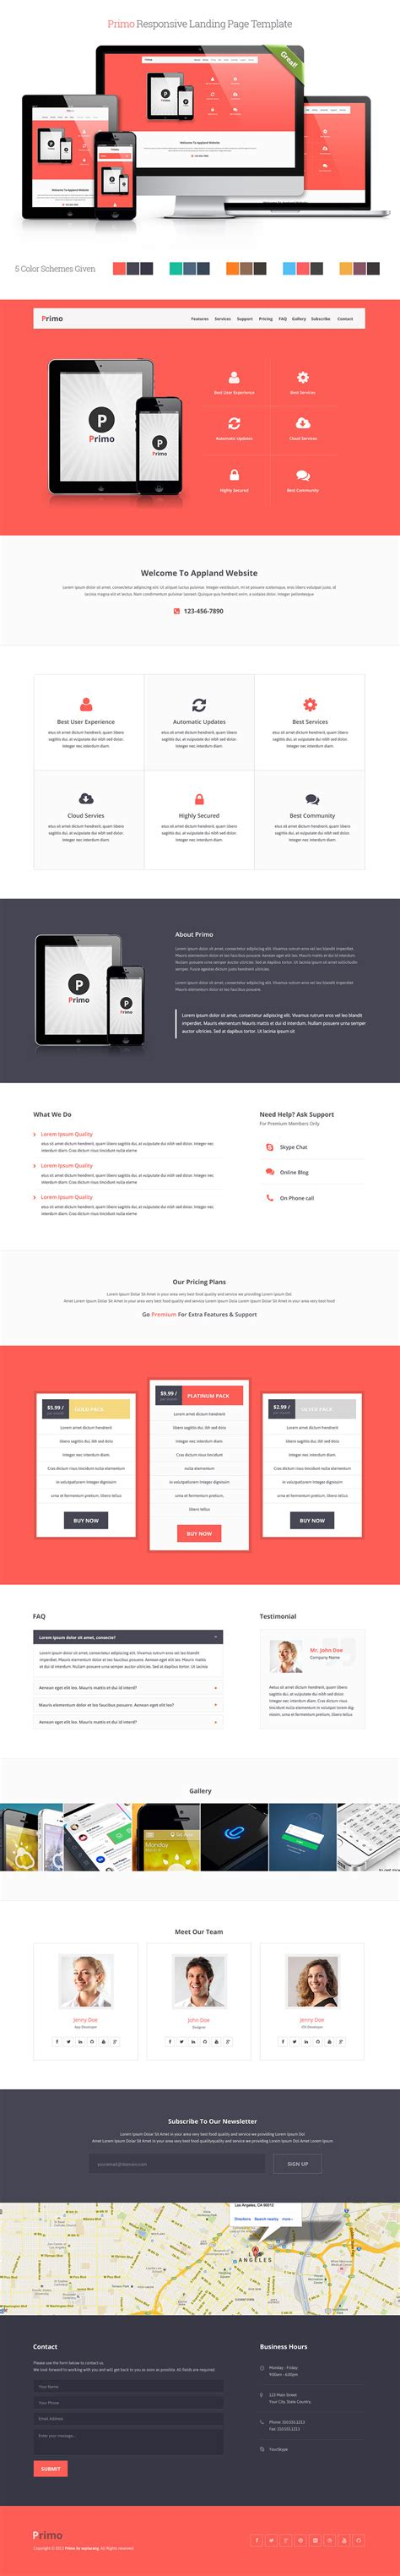 primo responsive landing page template by saptarang on